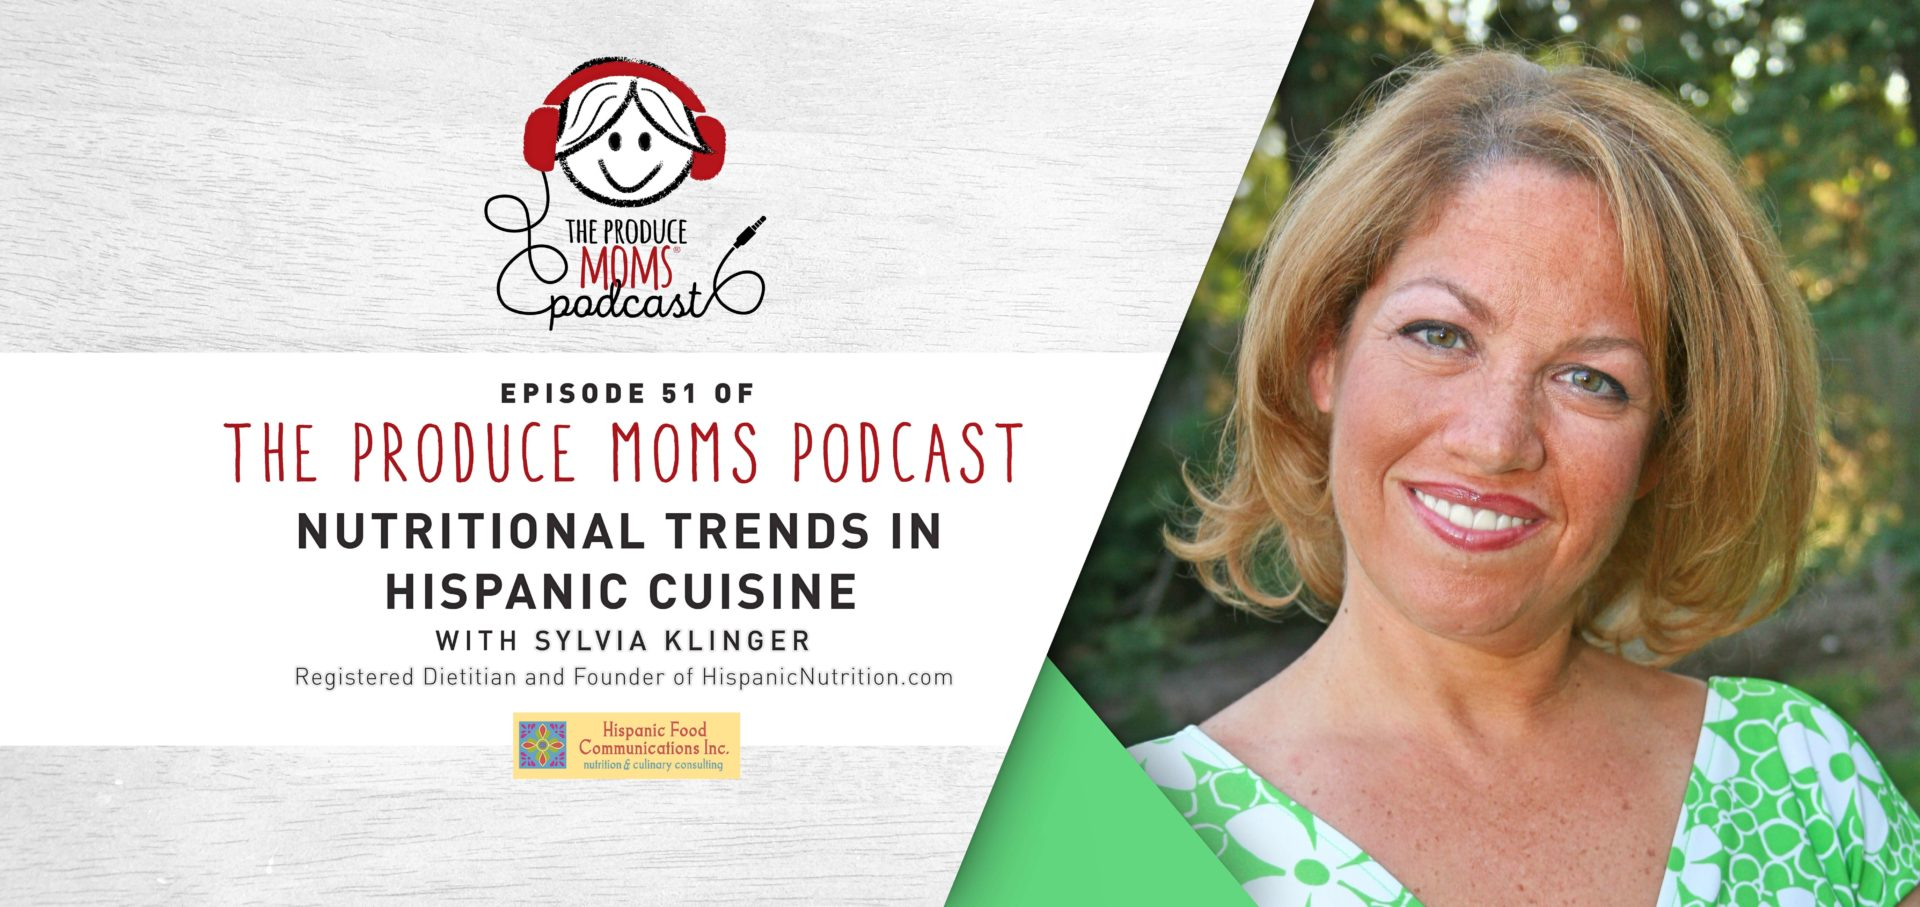 Episode 51: Nutritional Trends in Hispanic Cuisine with Sylvia Klinger